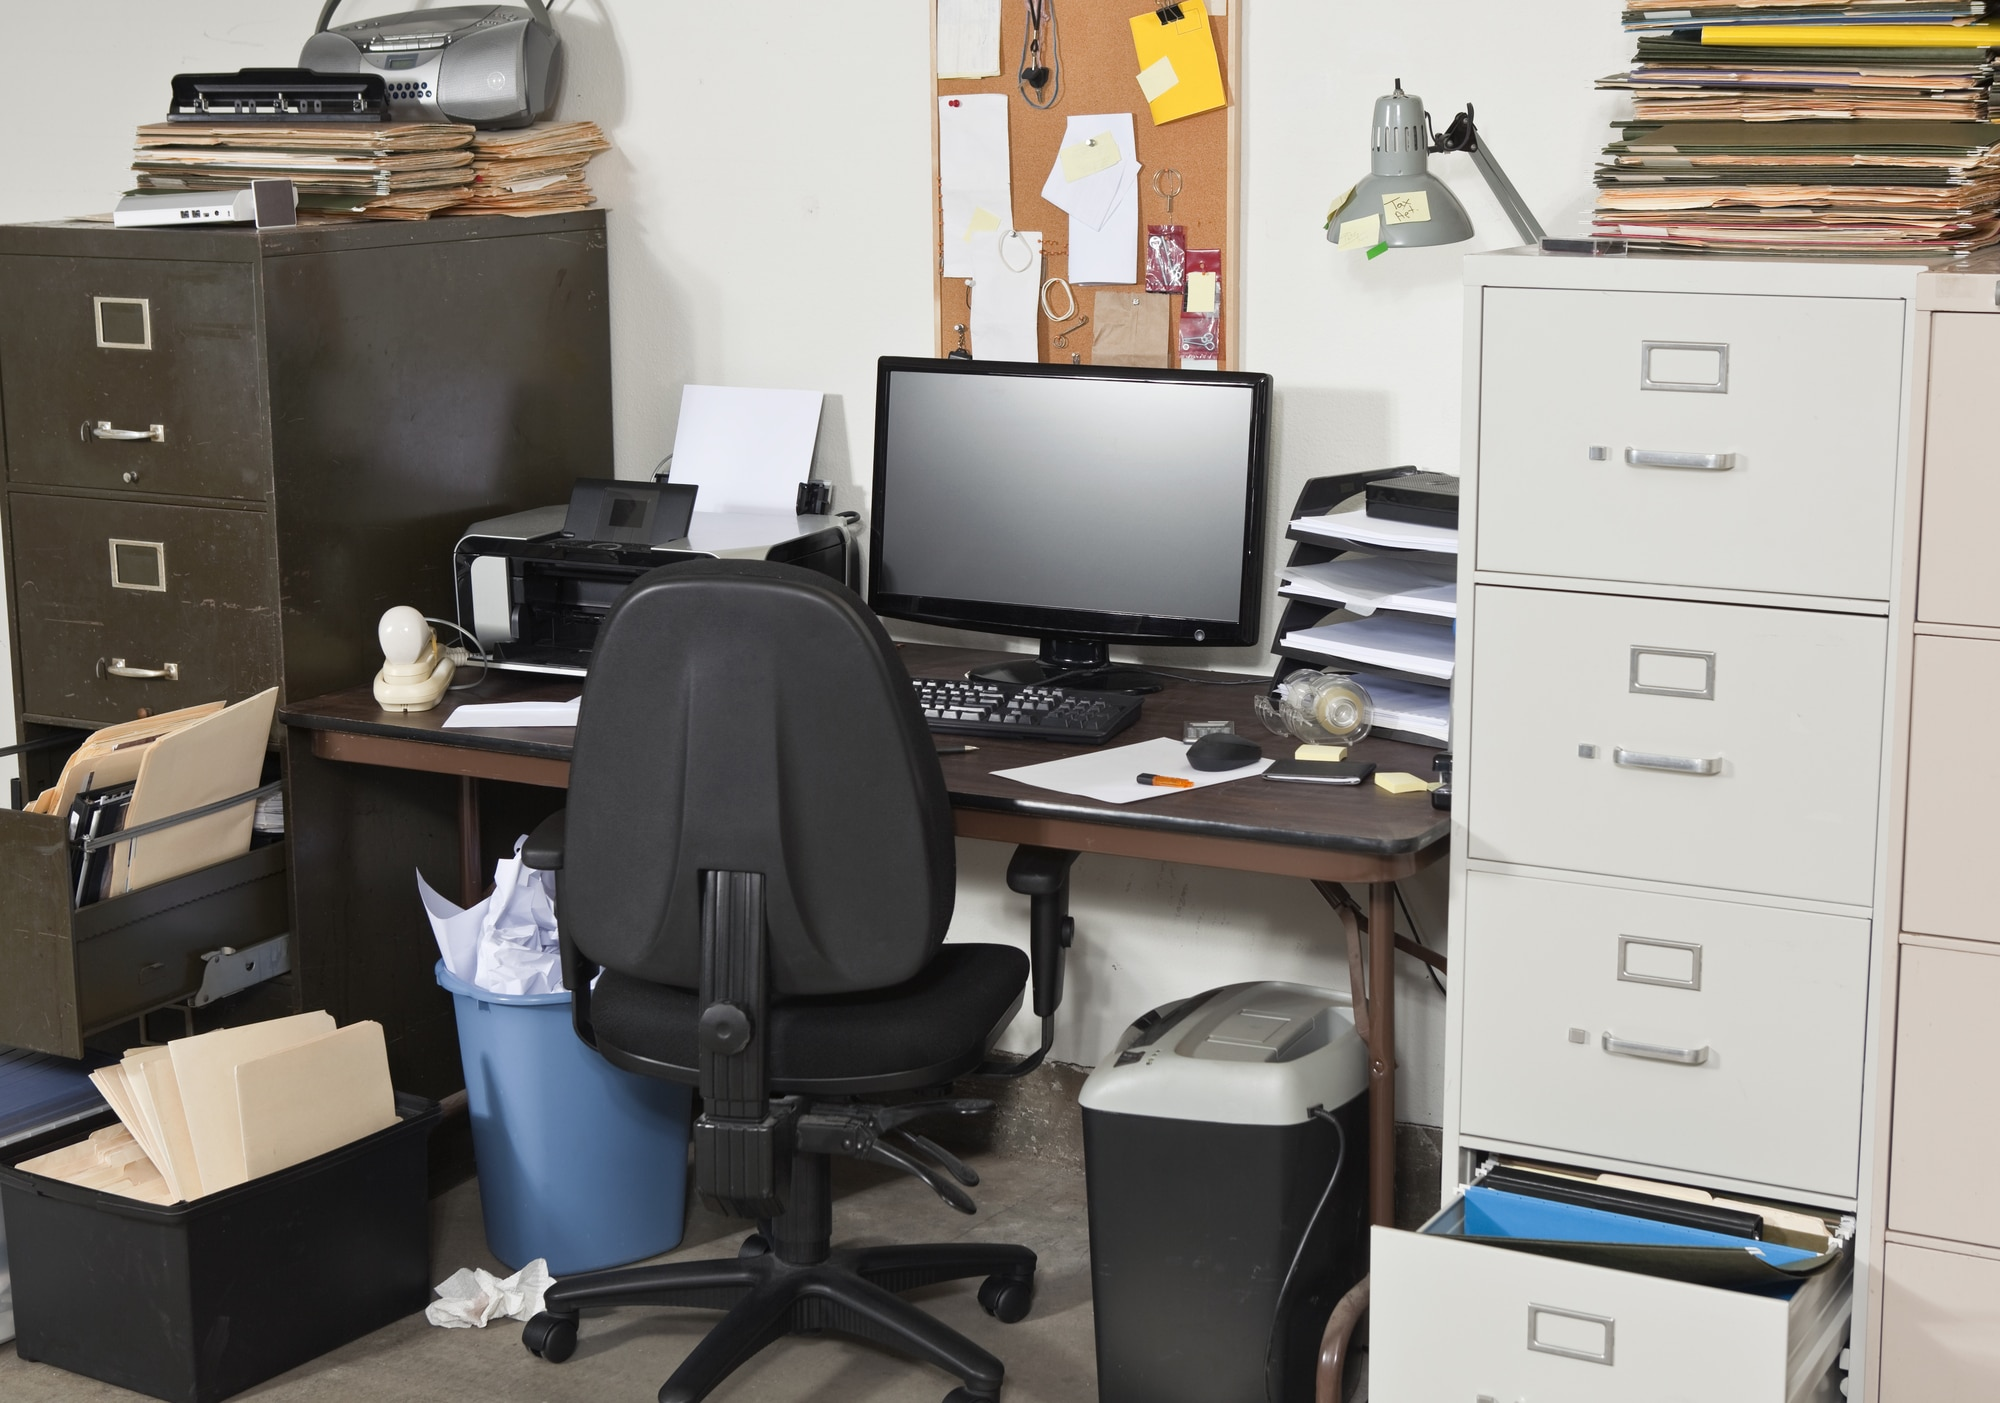 A messy home office | Innovate Home Org | #MessyOffice #homeoffice #StorageOffice